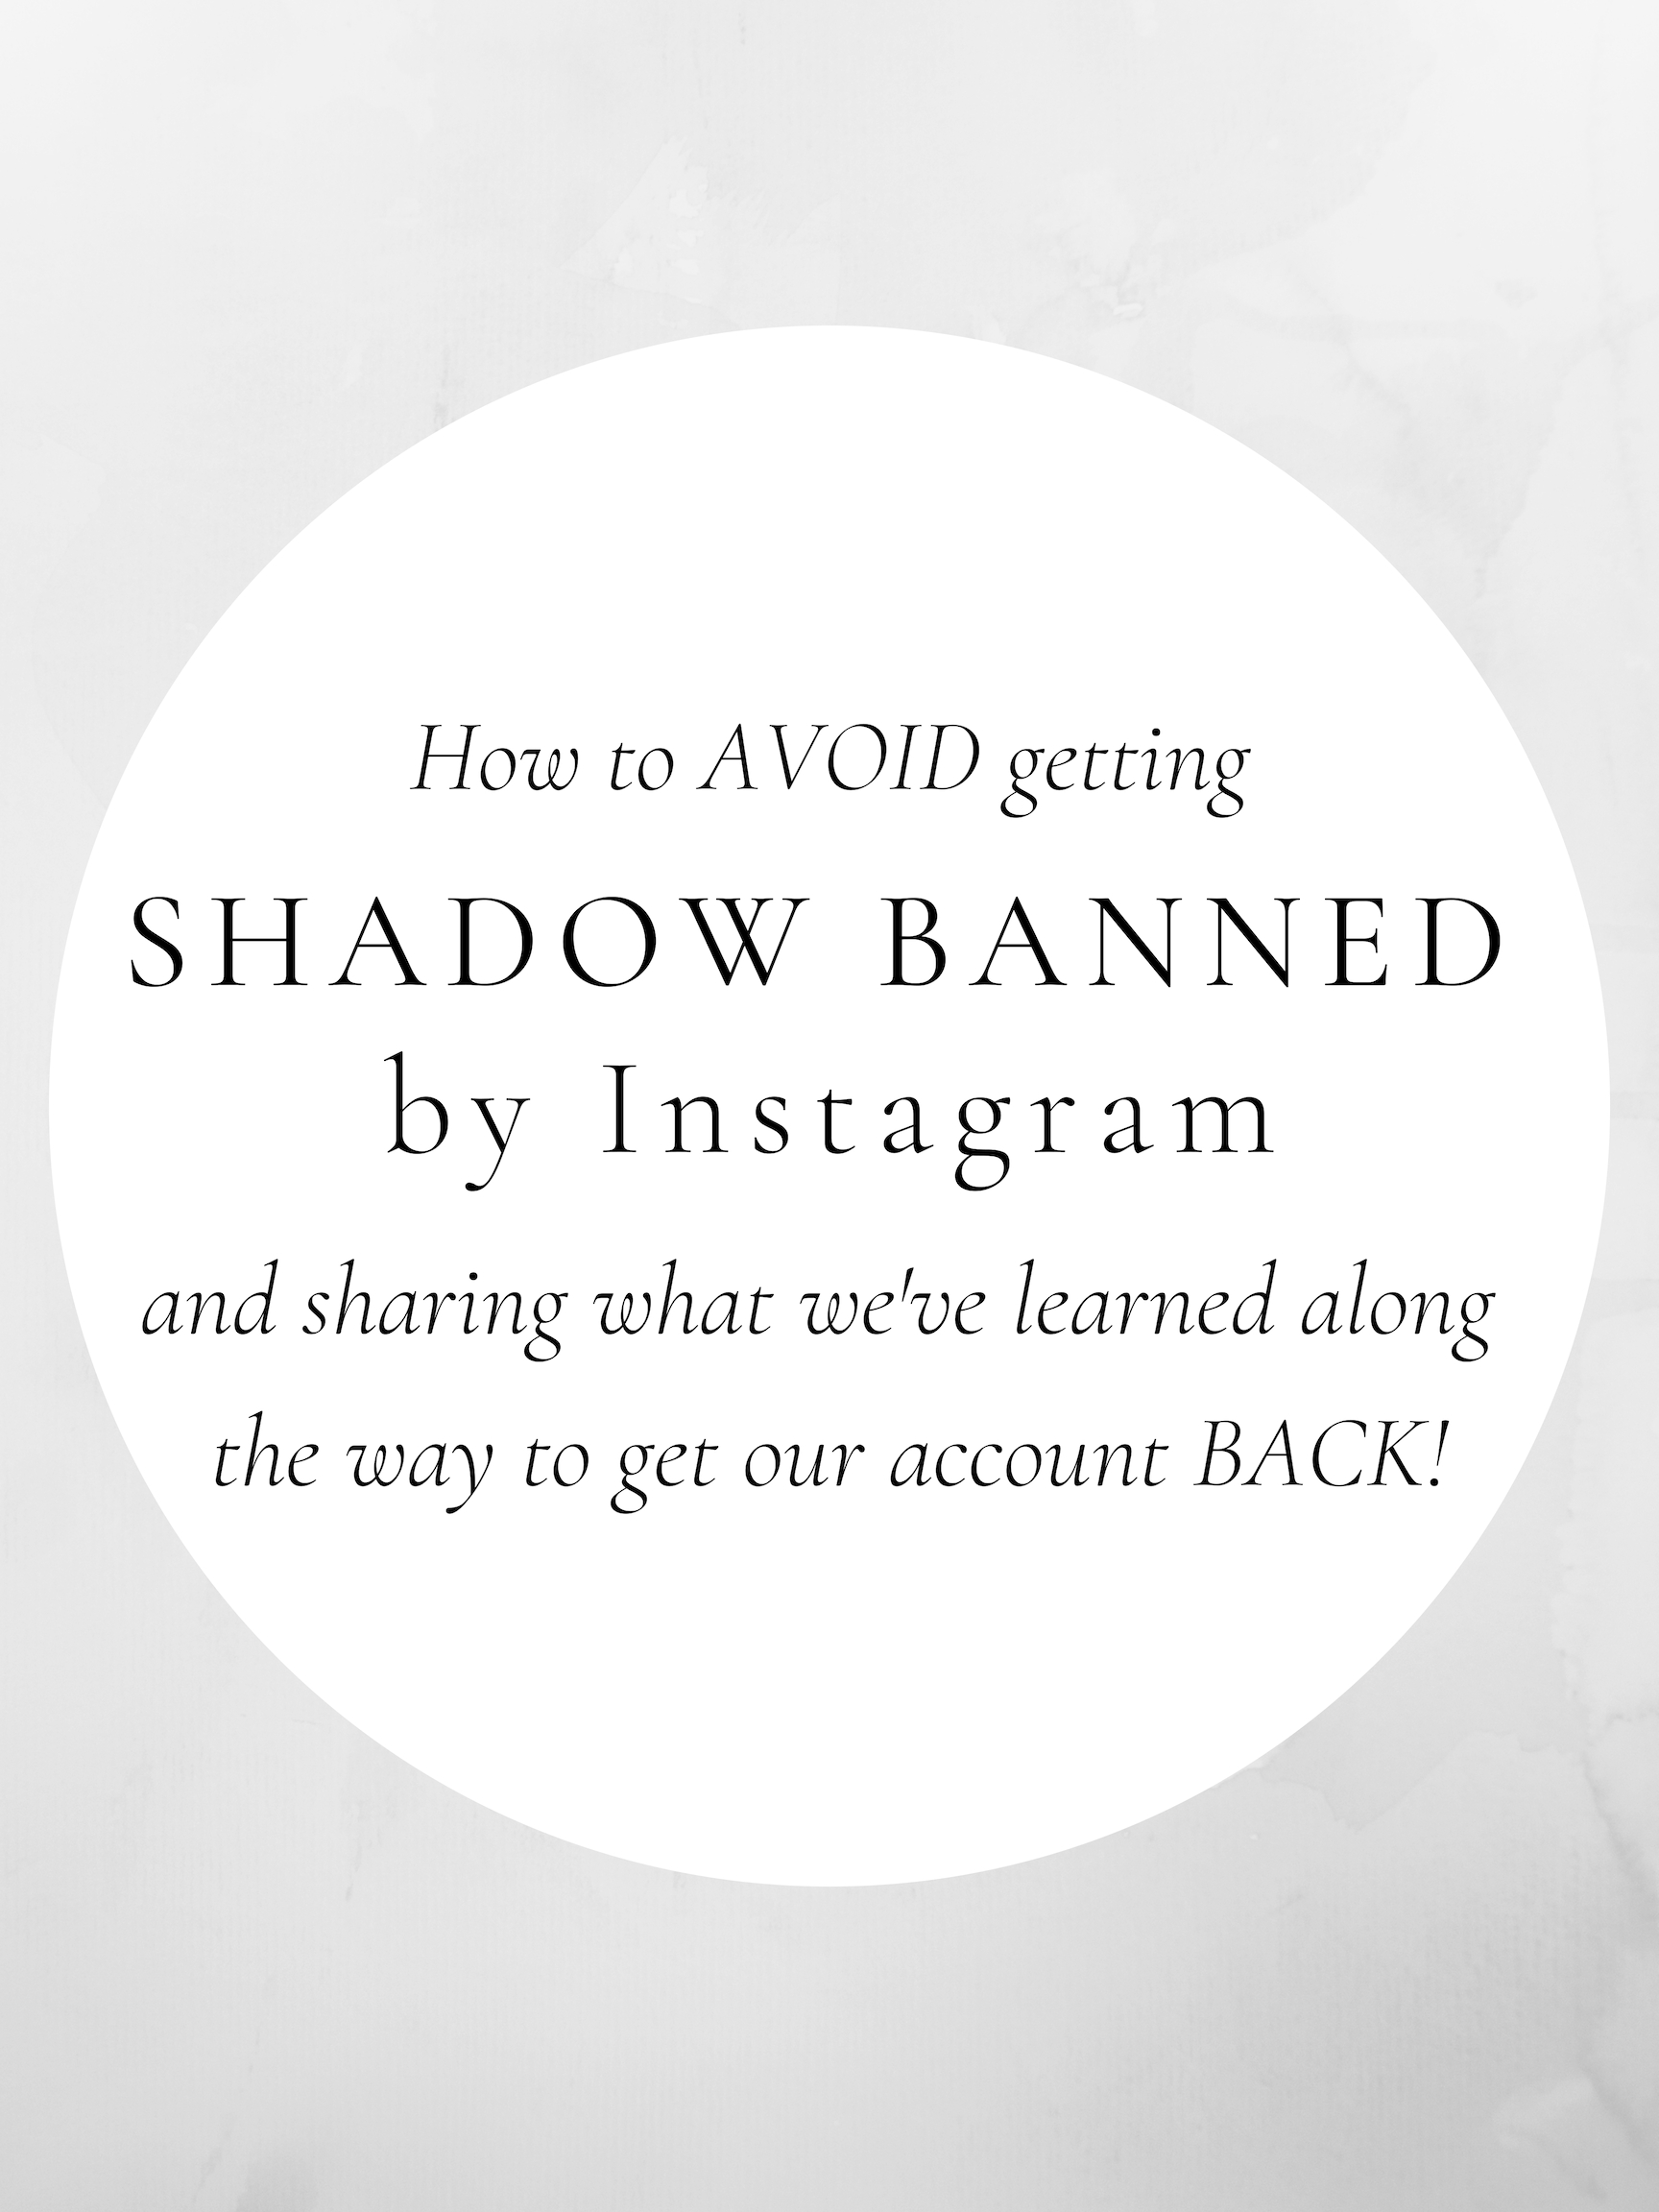 SHADOW BANNING AND INSTAGRAM